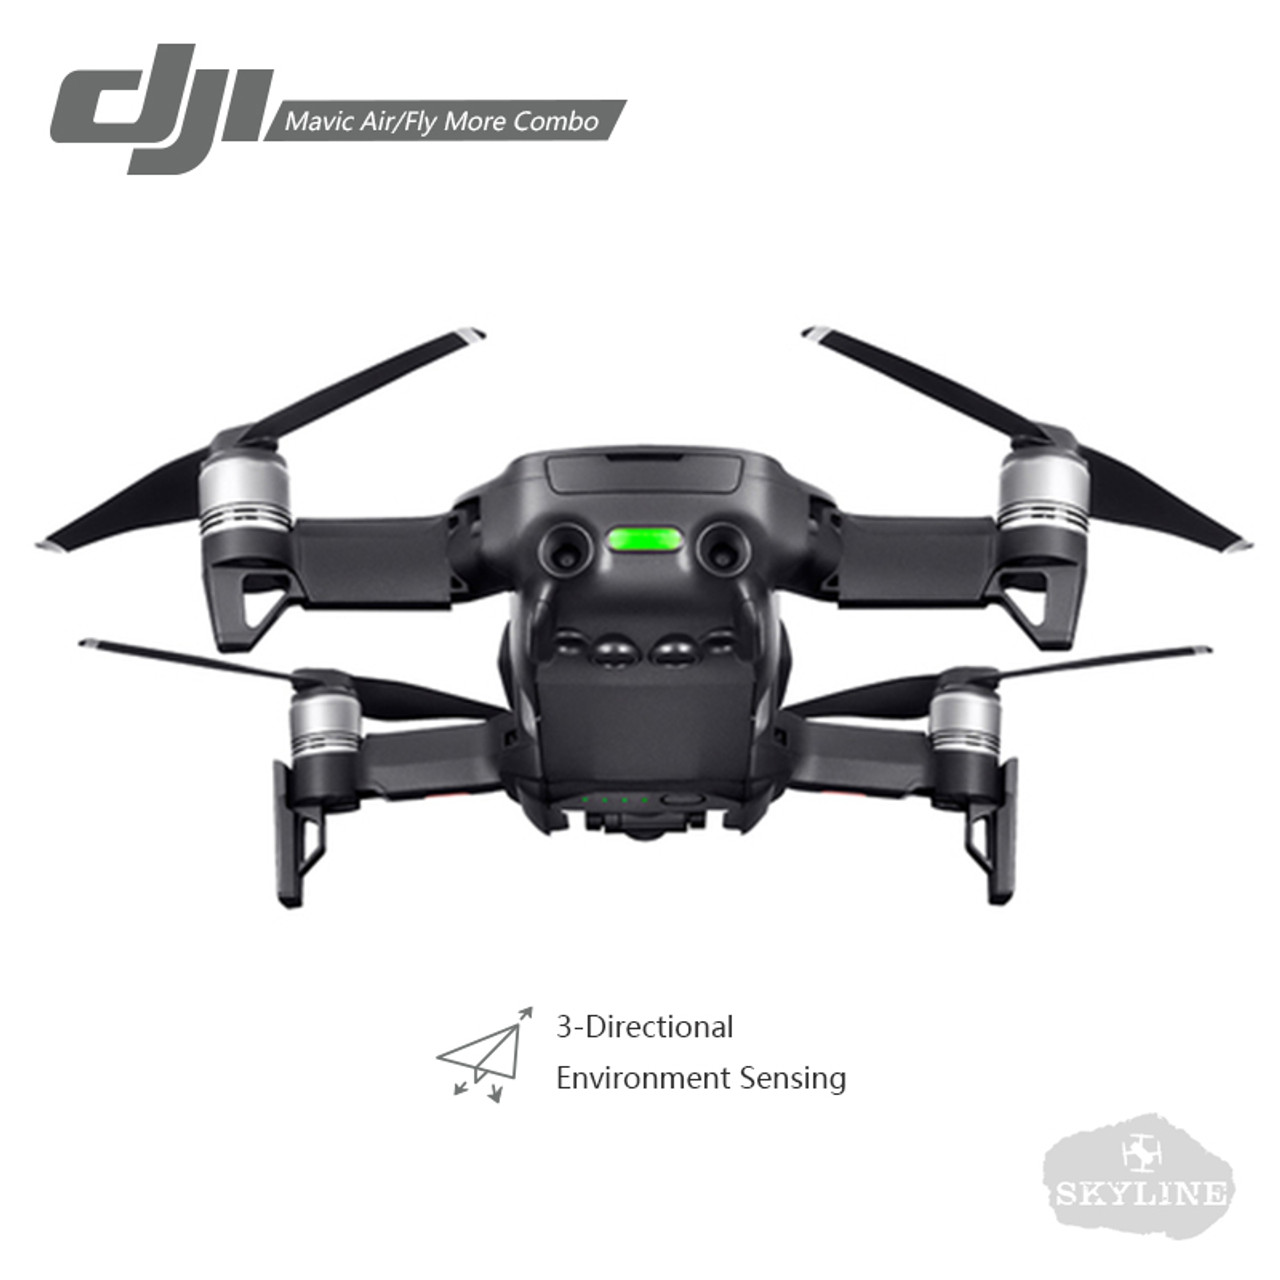 760546d046e ... DJI Mavic Air/Mavic Air Fly More Combo drone 4K 100Mbps Video 3-Axis ...